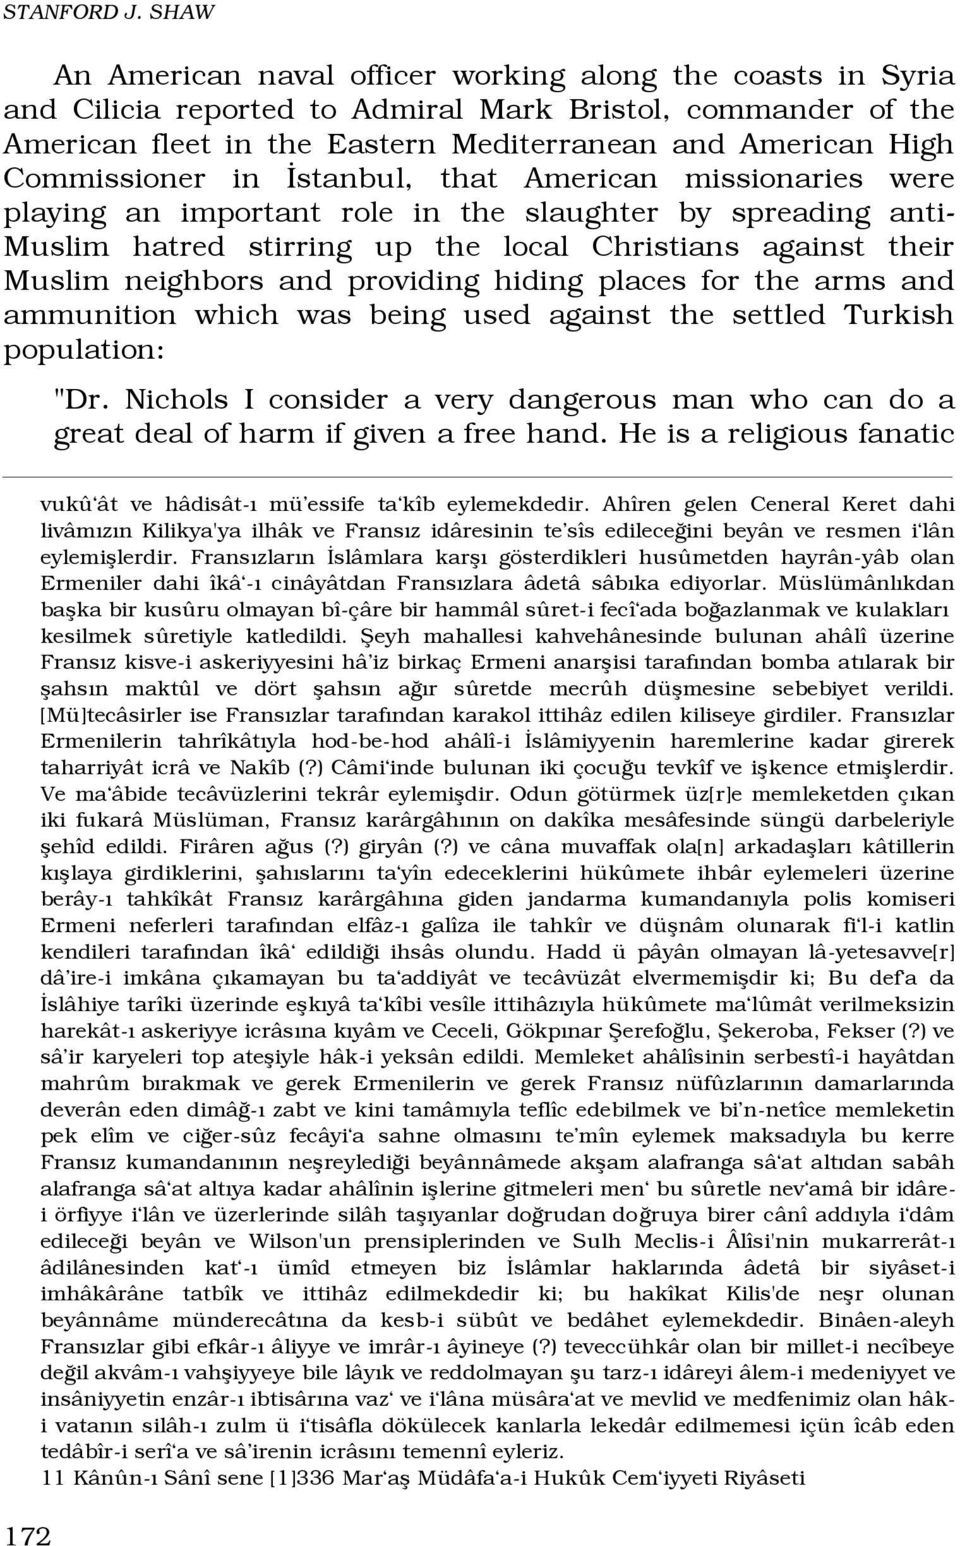 Commissioner in stanbul, that American missionaries were playing an important role in the slaughter by spreading anti- Muslim hatred stirring up the local Christians against their Muslim neighbors